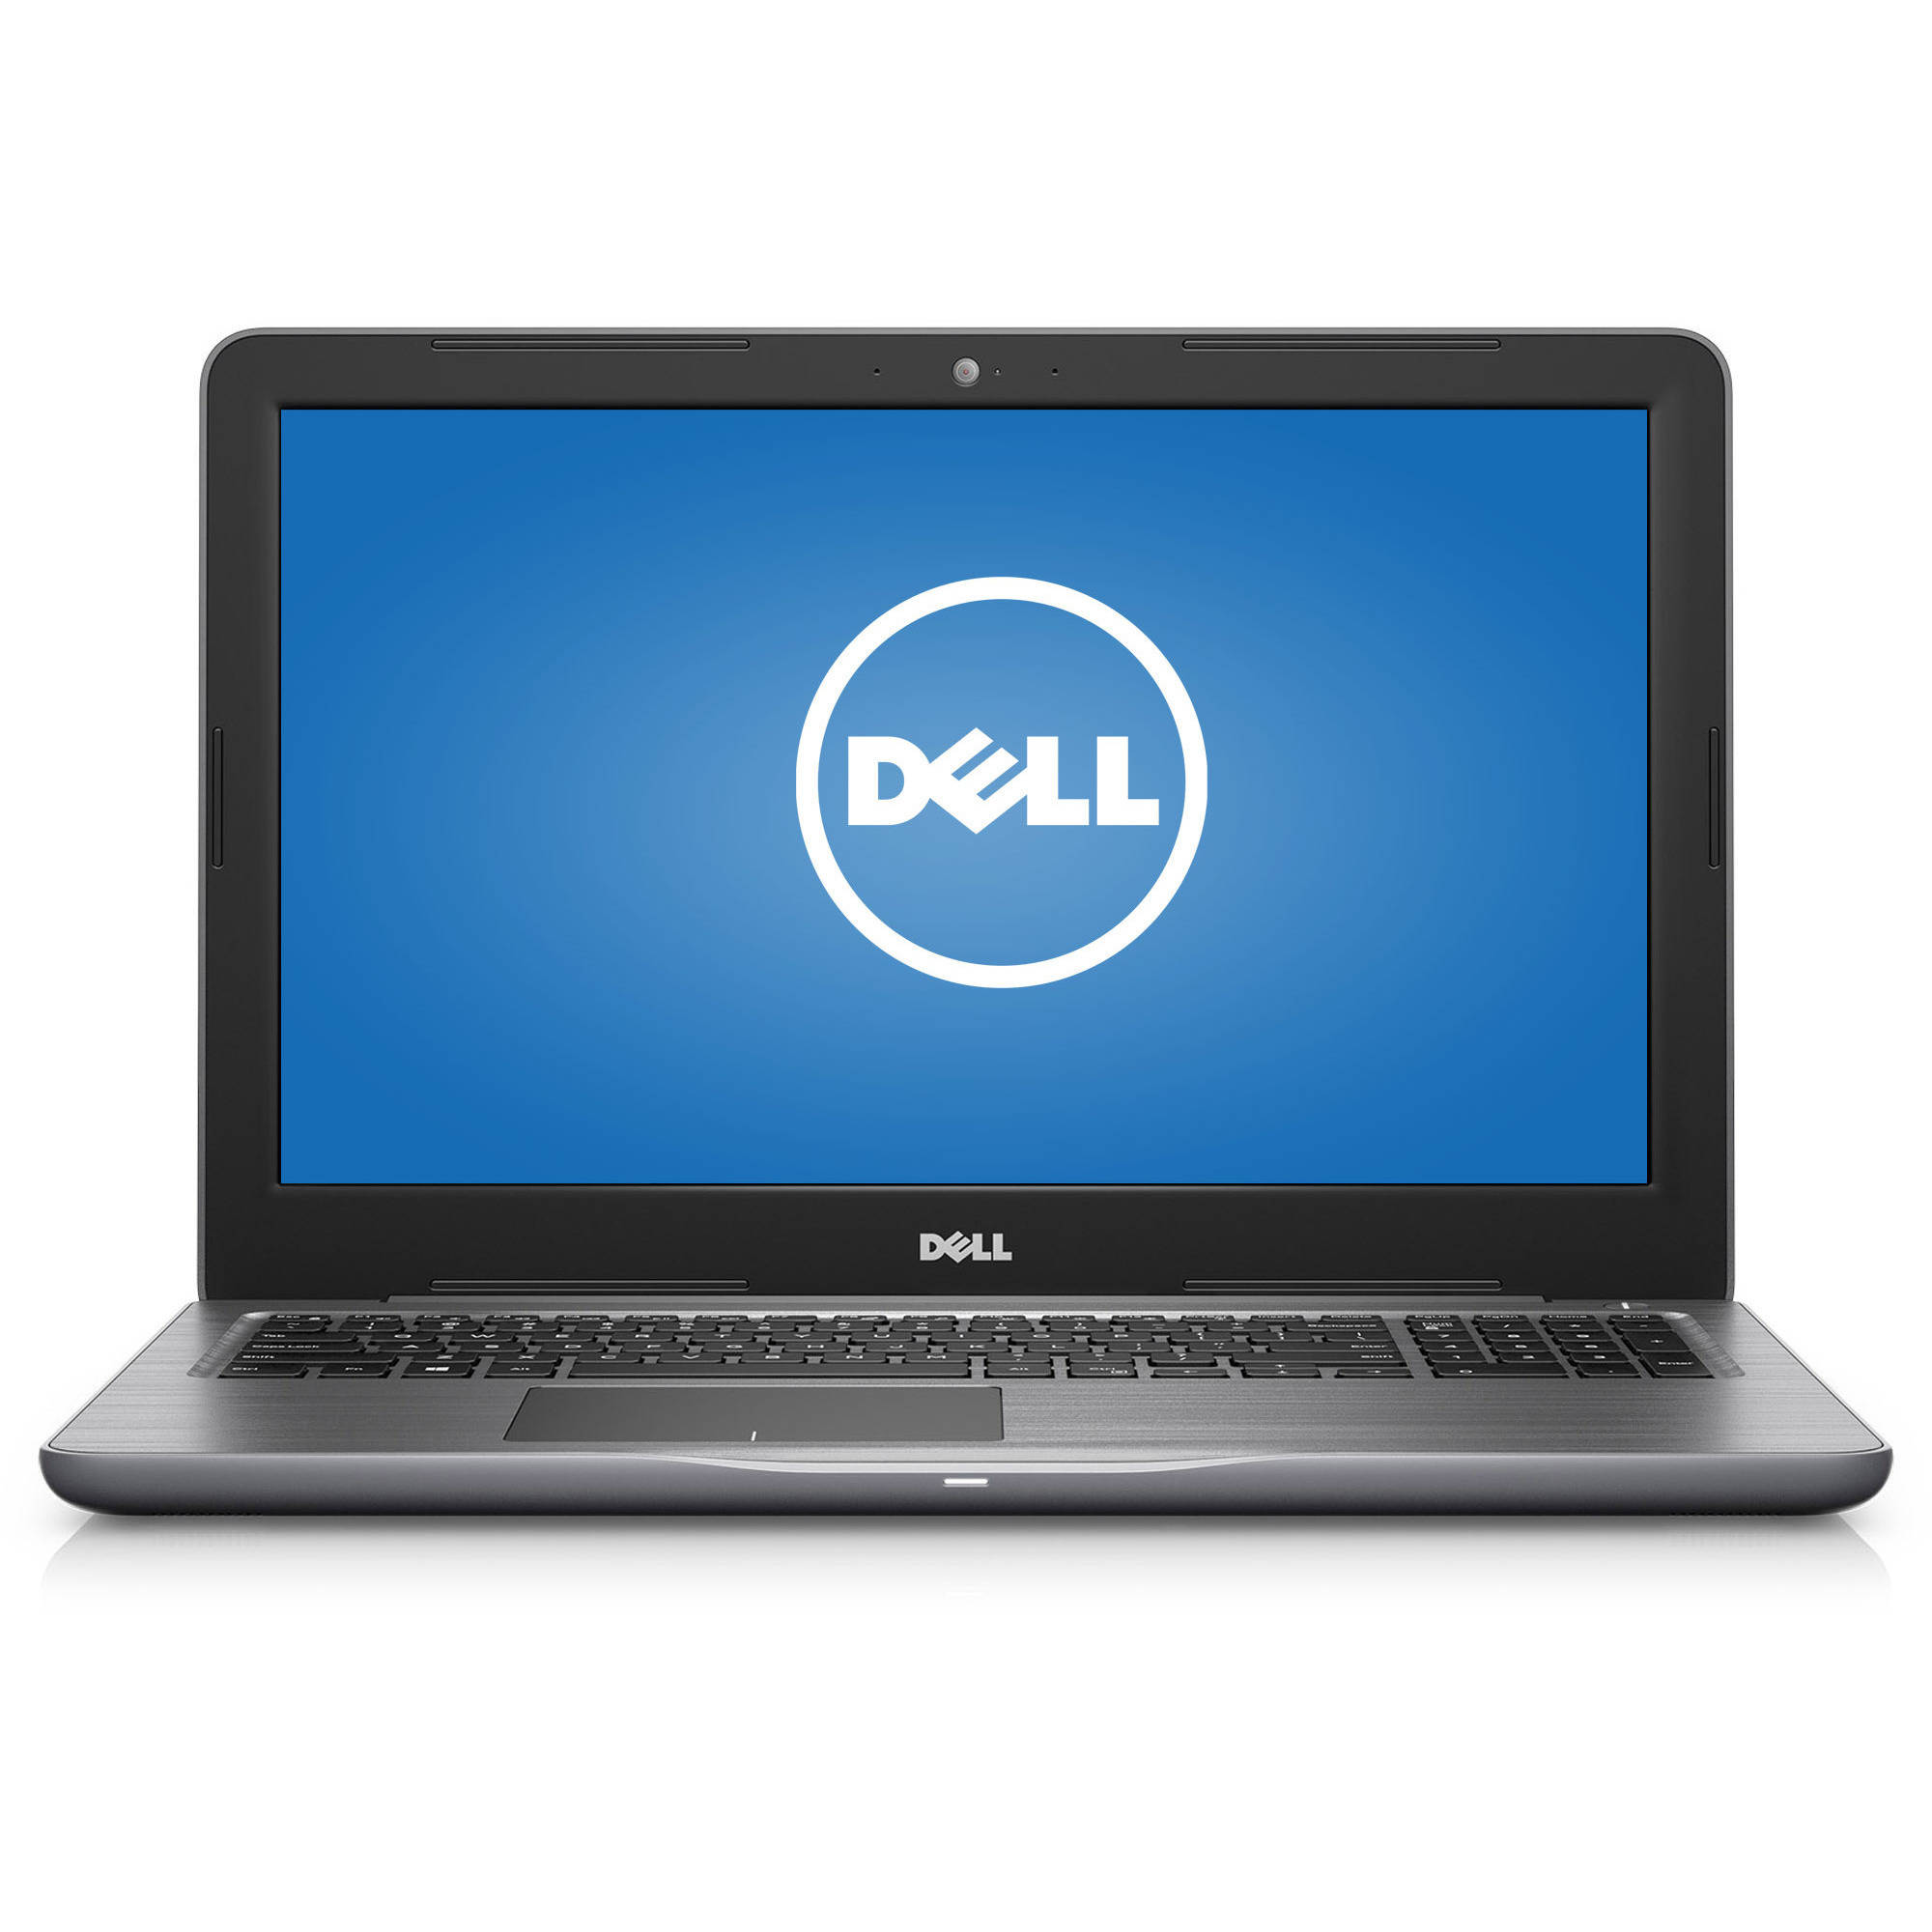 "Dell Inspiron 15 5000 i5567 15.6"" Laptop, Touchscreen, Windows 10 Home, Intel Core i7-7500U Processor, 16GB RAM, 1TB Hard Drive"